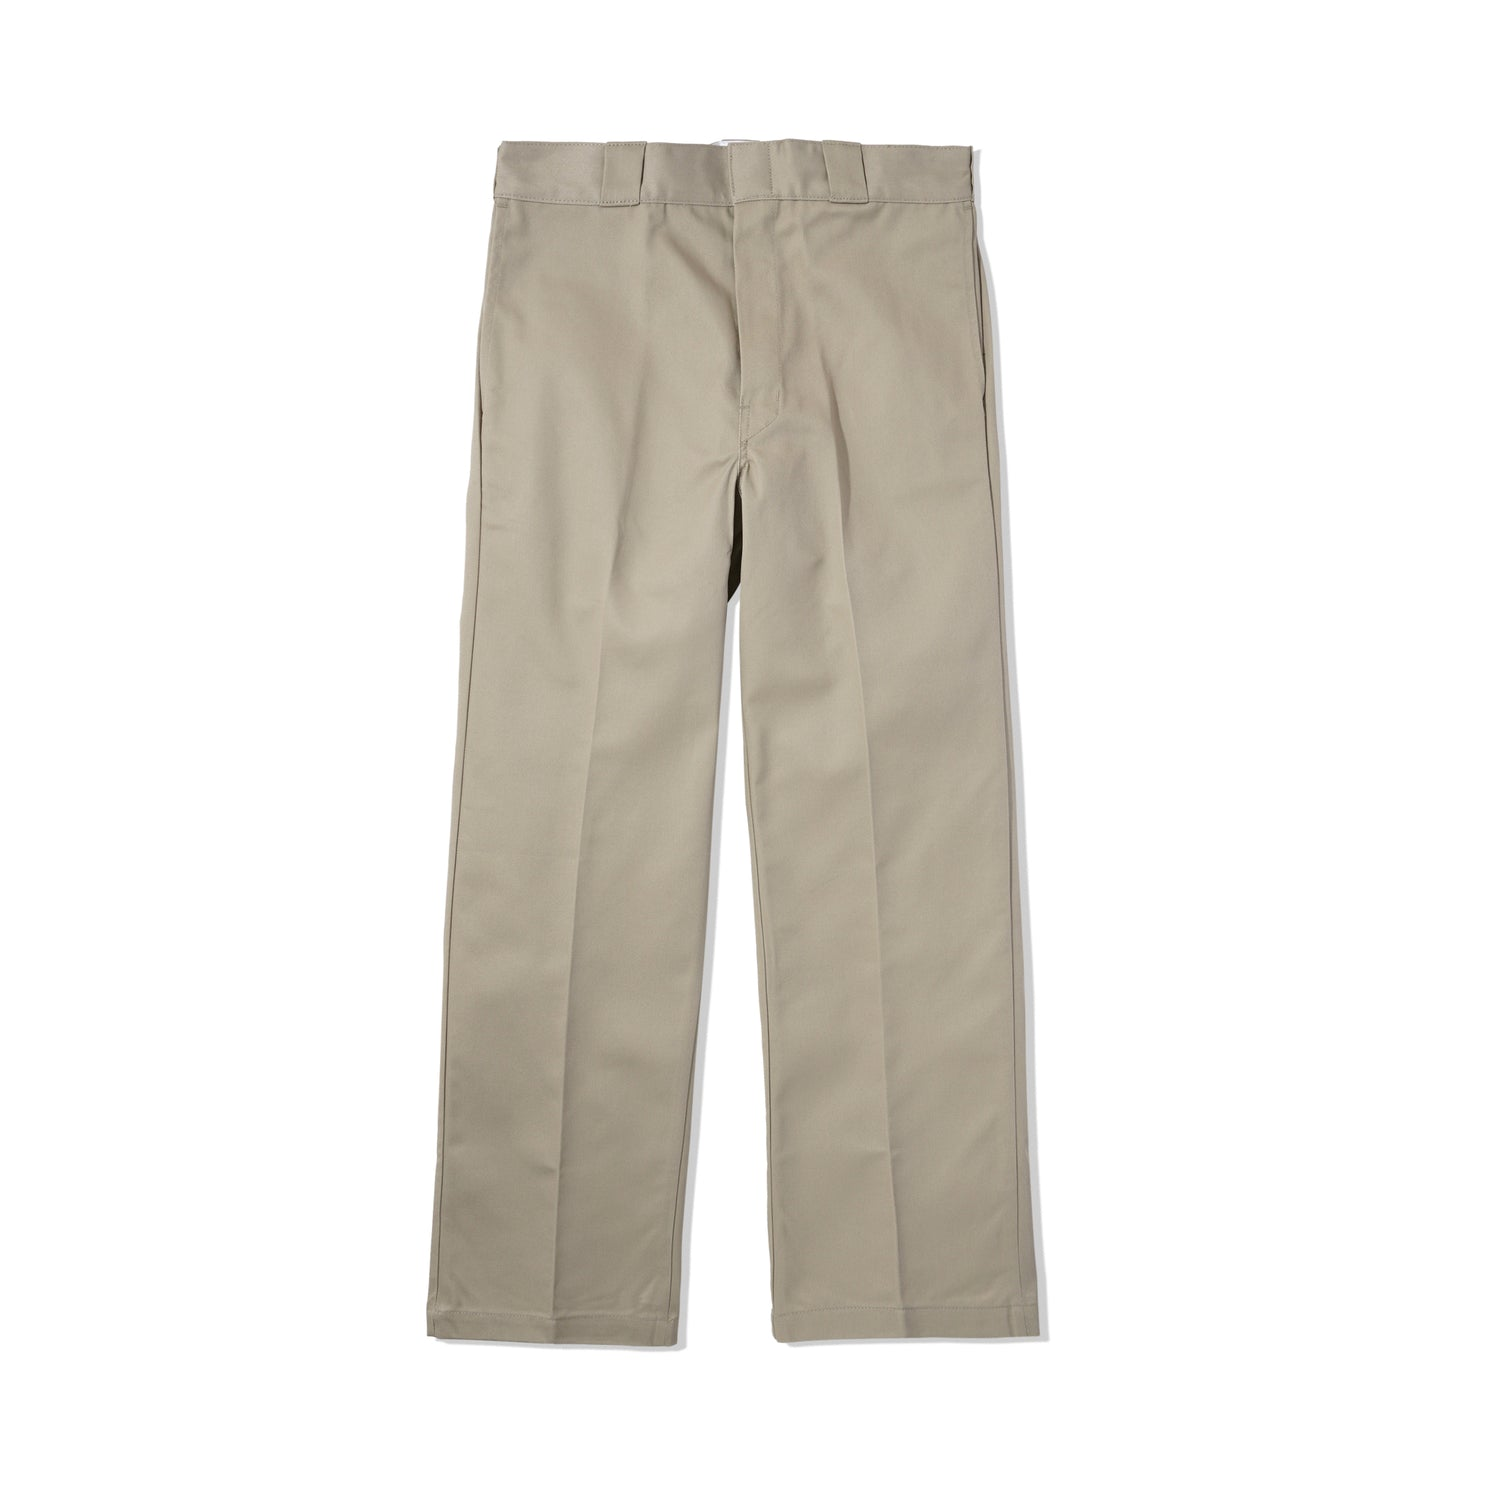 874 Work Pants, Khaki